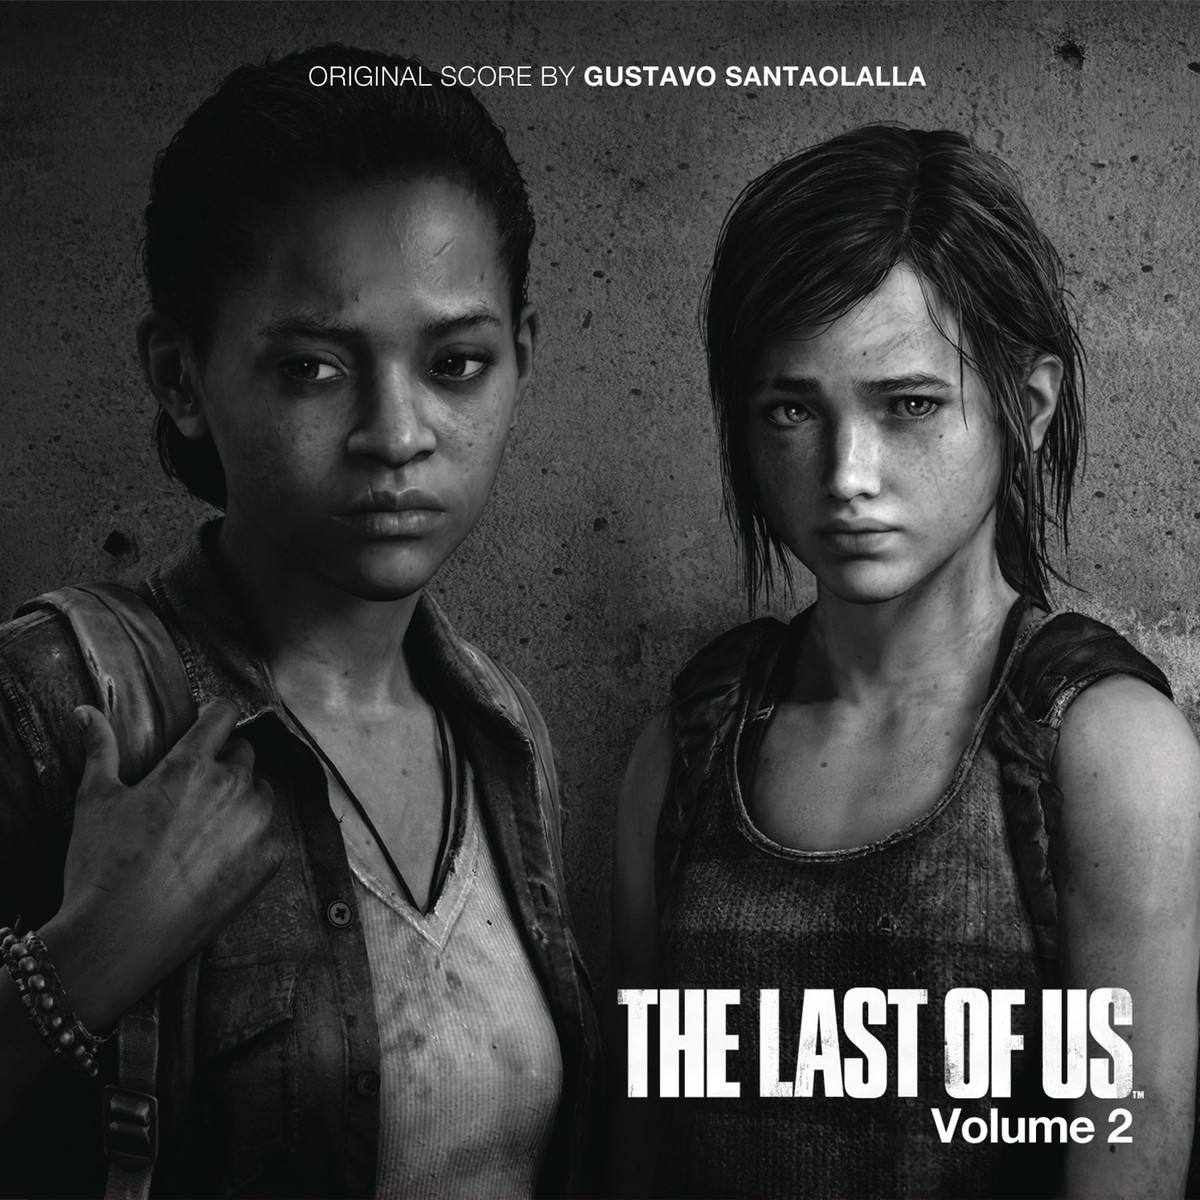 THE LAST OF US Volume 2